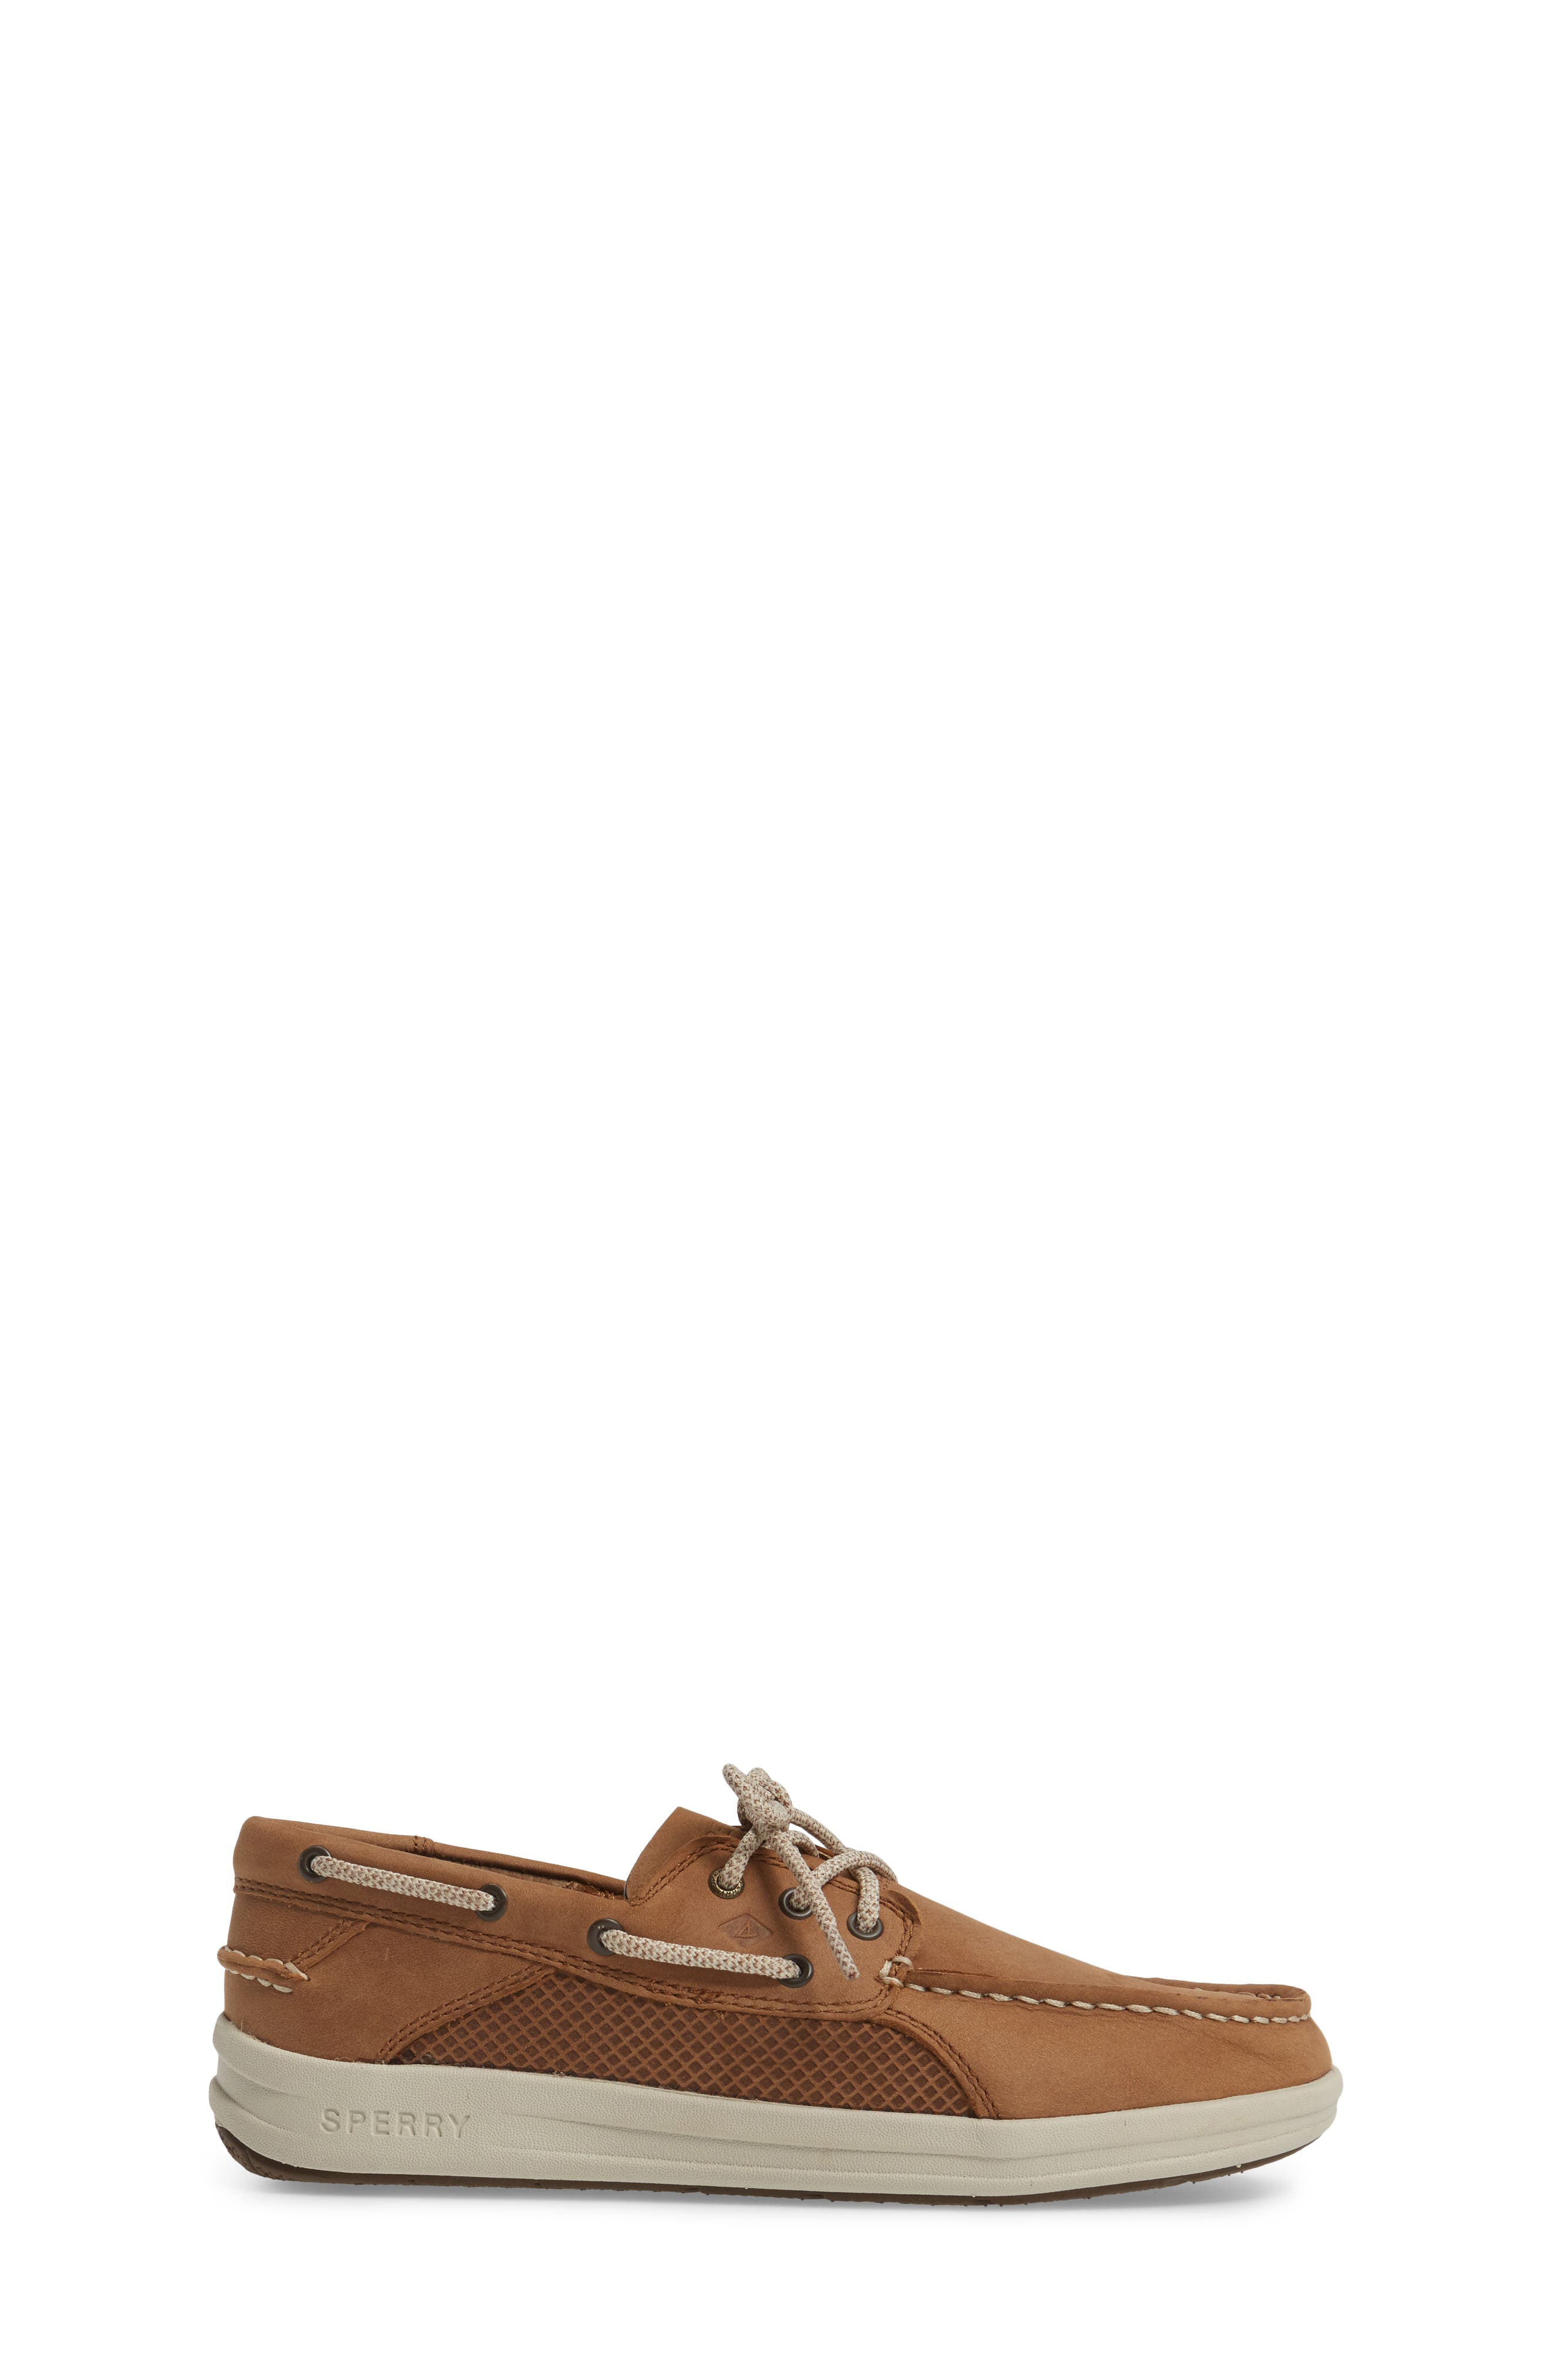 Sperry Gamefish Boat Shoe,                             Alternate thumbnail 3, color,                             Dark Tan